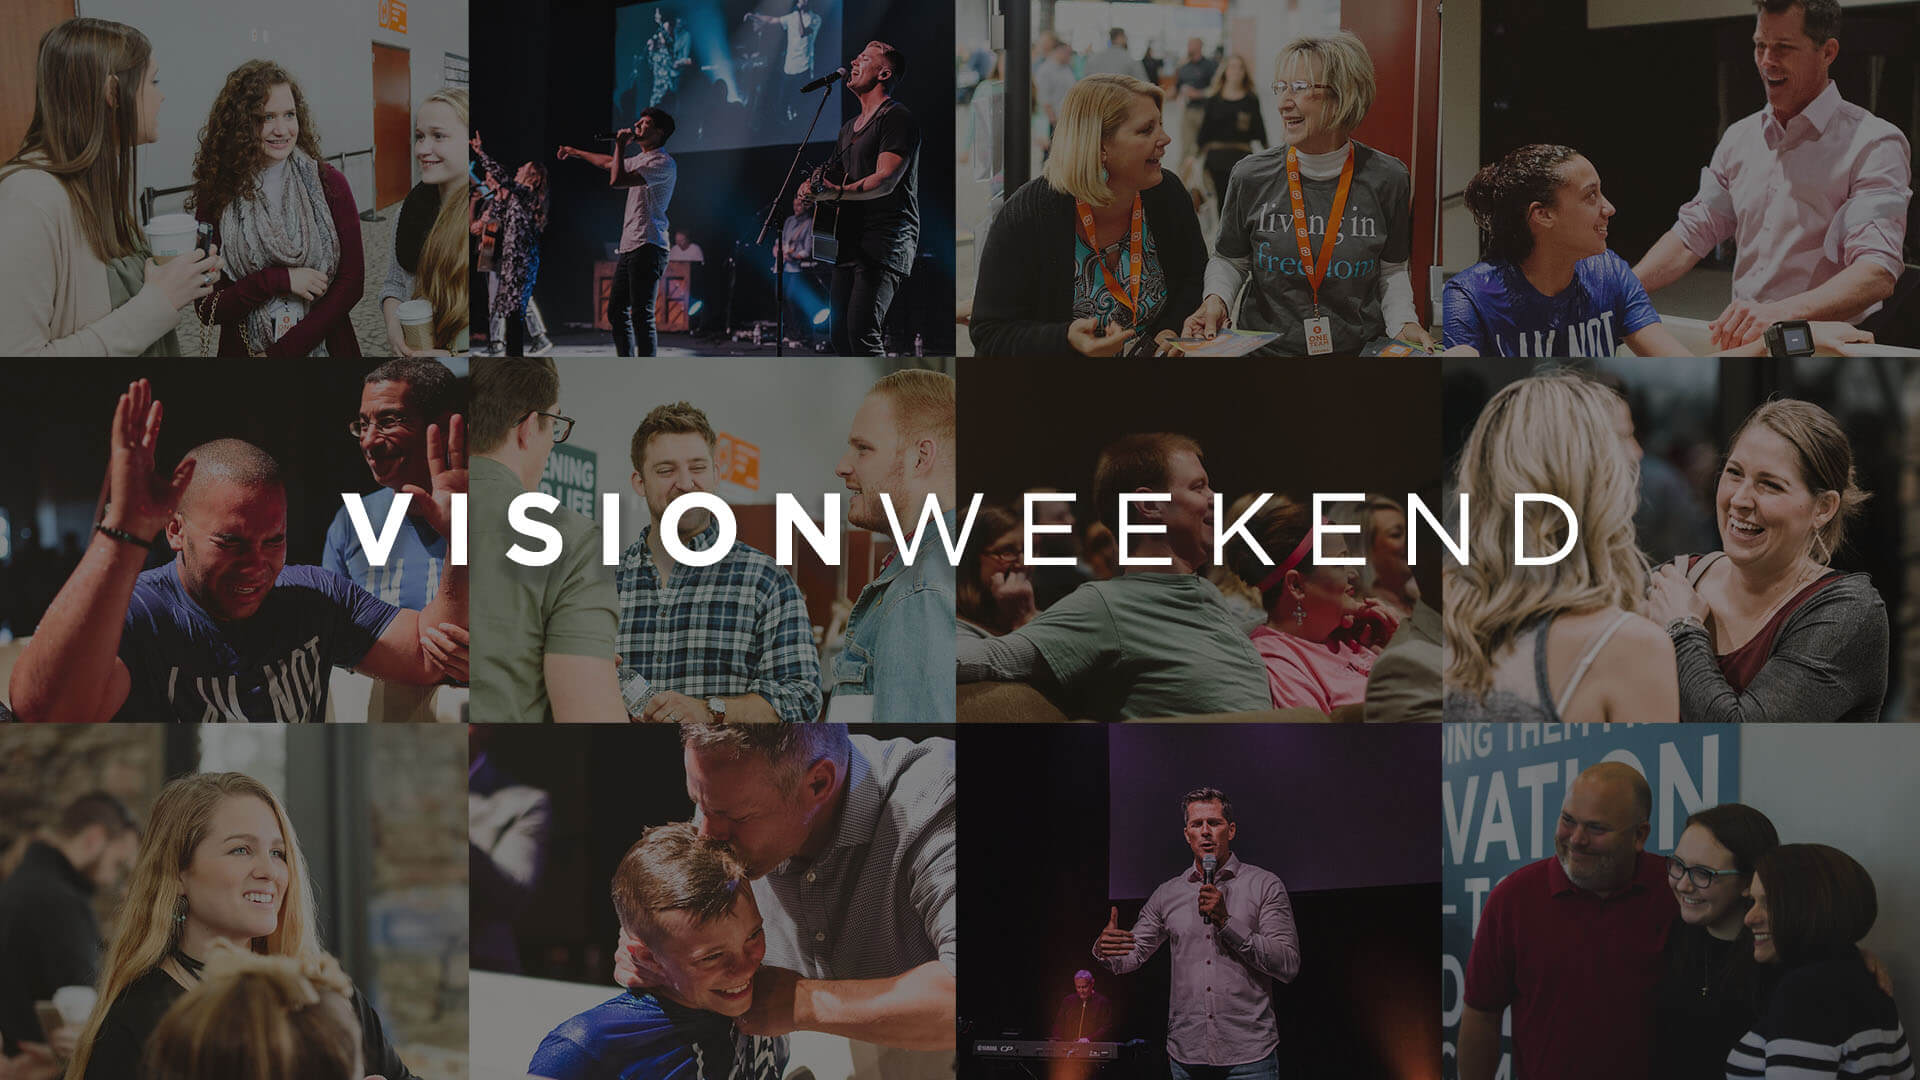 Jeff Klingenberg | Vision Weekend – April 2018